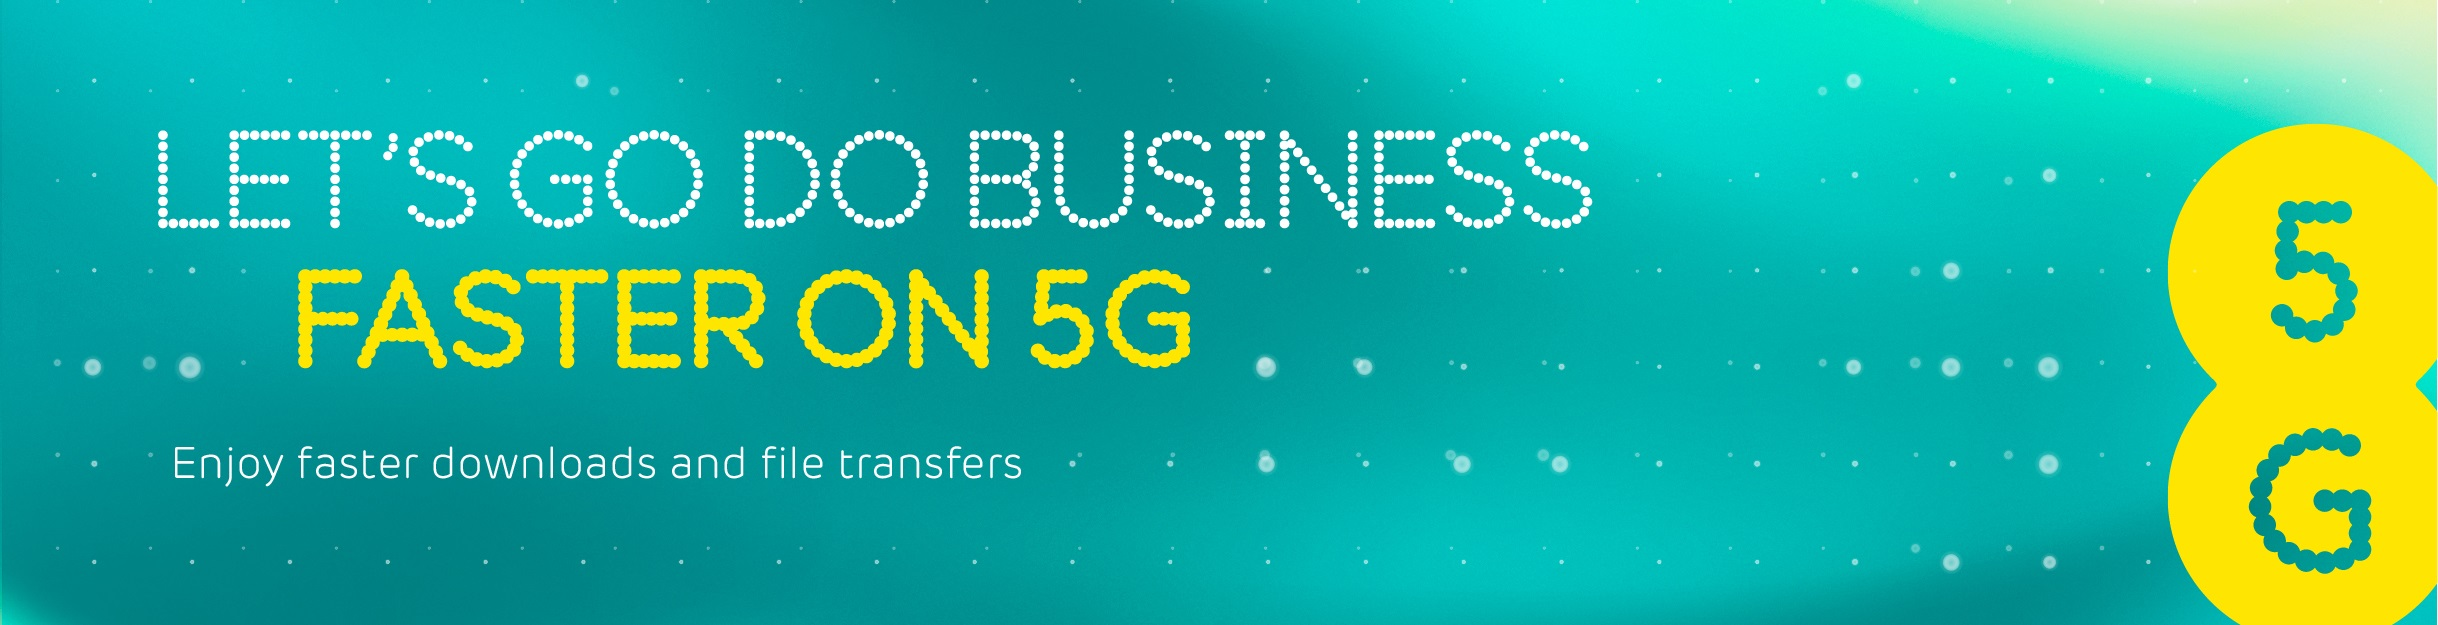 Lets-do-good-business-faster-on-5G-Web-banner